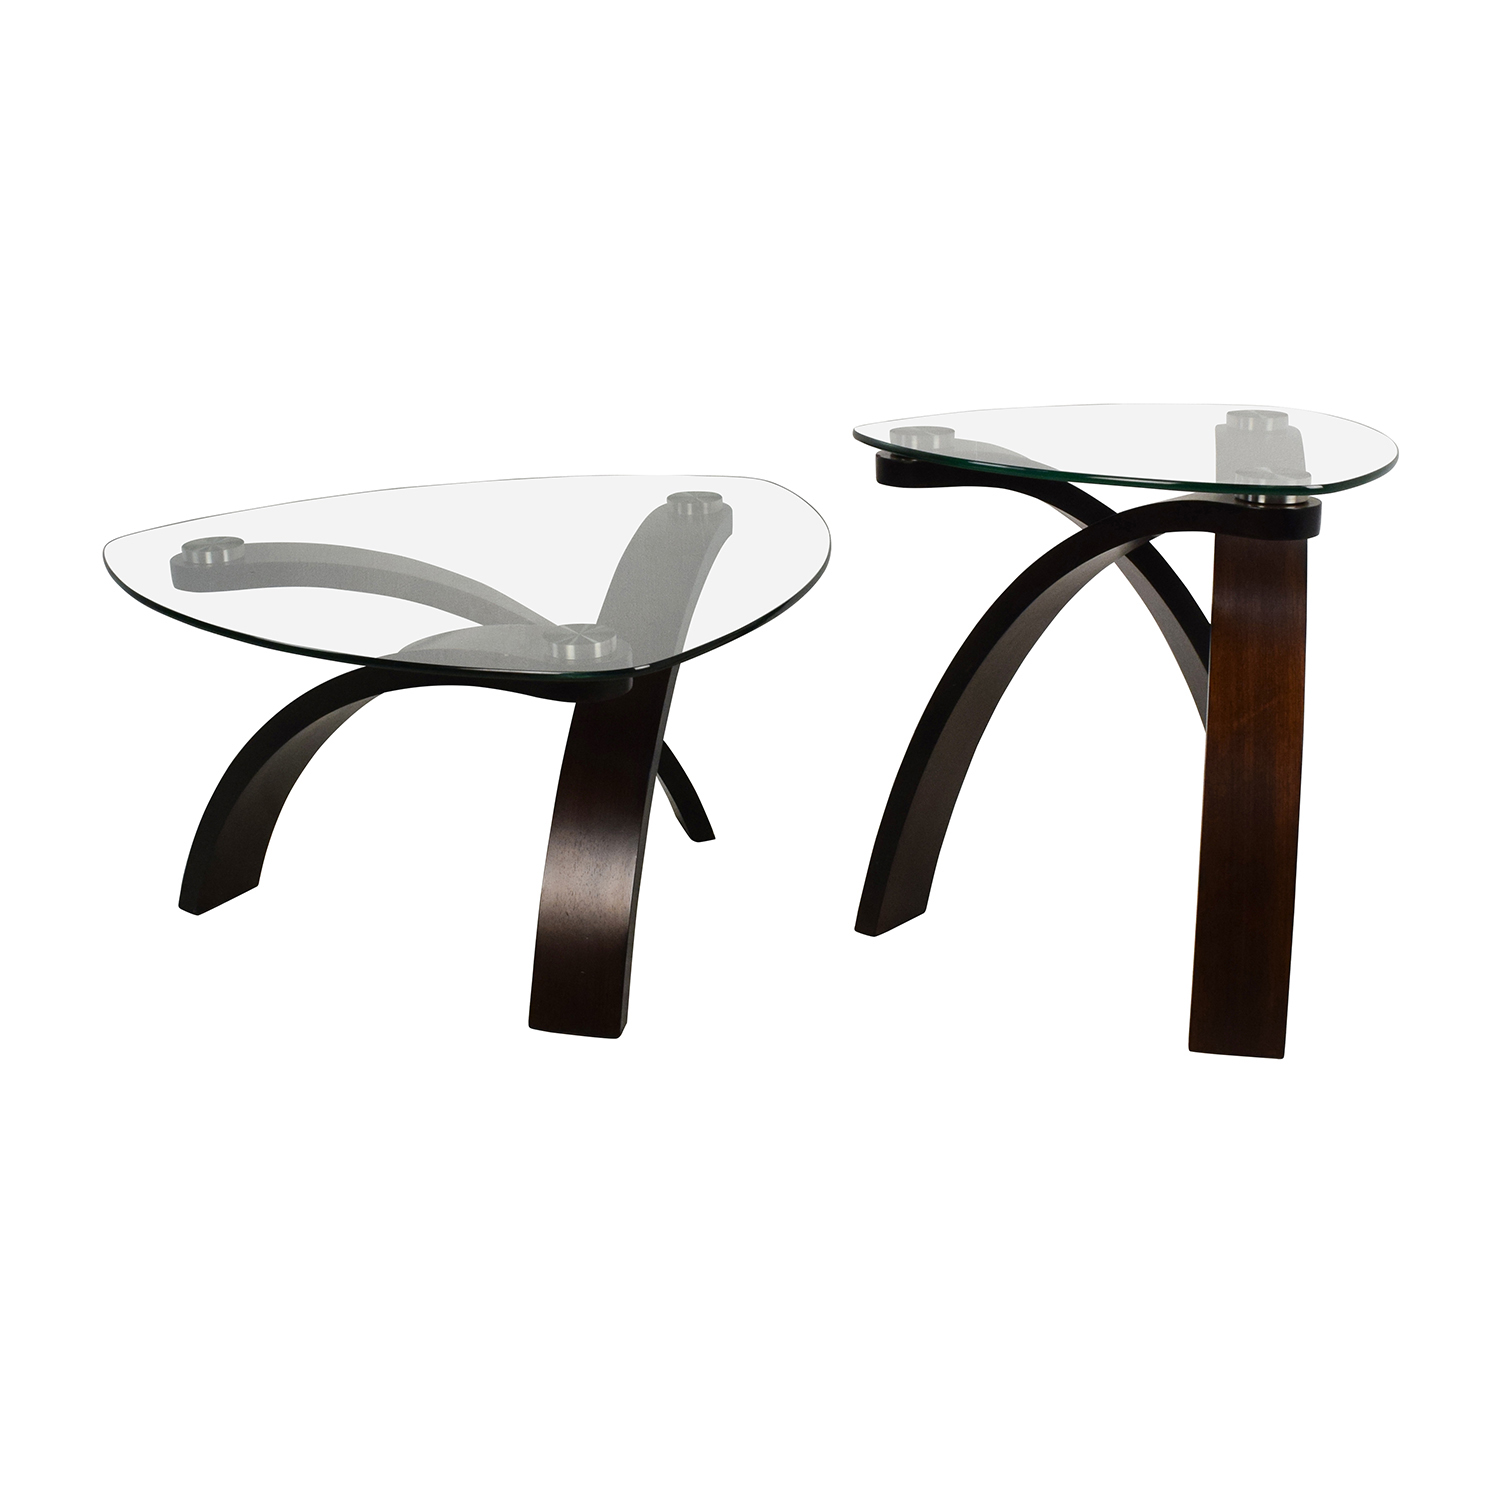 Raymour and Flanigan Raymour & Flanigan Allure Coffee Table Set on sale